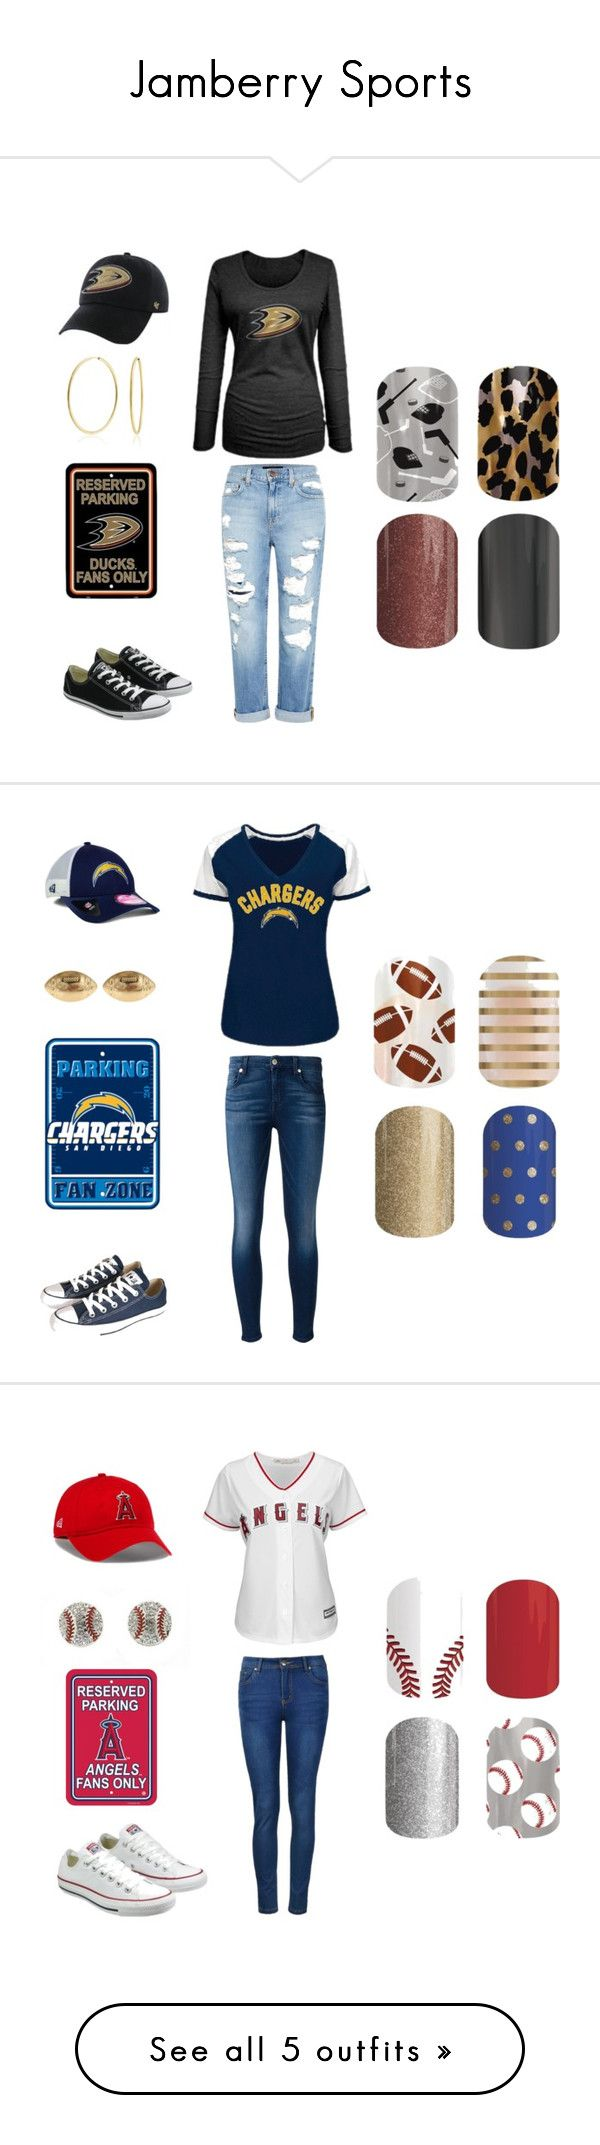 """""""Jamberry Sports"""" by kellie-guravich-medivitz on Polyvore featuring Genetic Denim, Bling Jewelry, Converse, 7 For All Mankind, New Era, Fornash, Ally Fashion, Majestic, adidas and Paige Denim"""